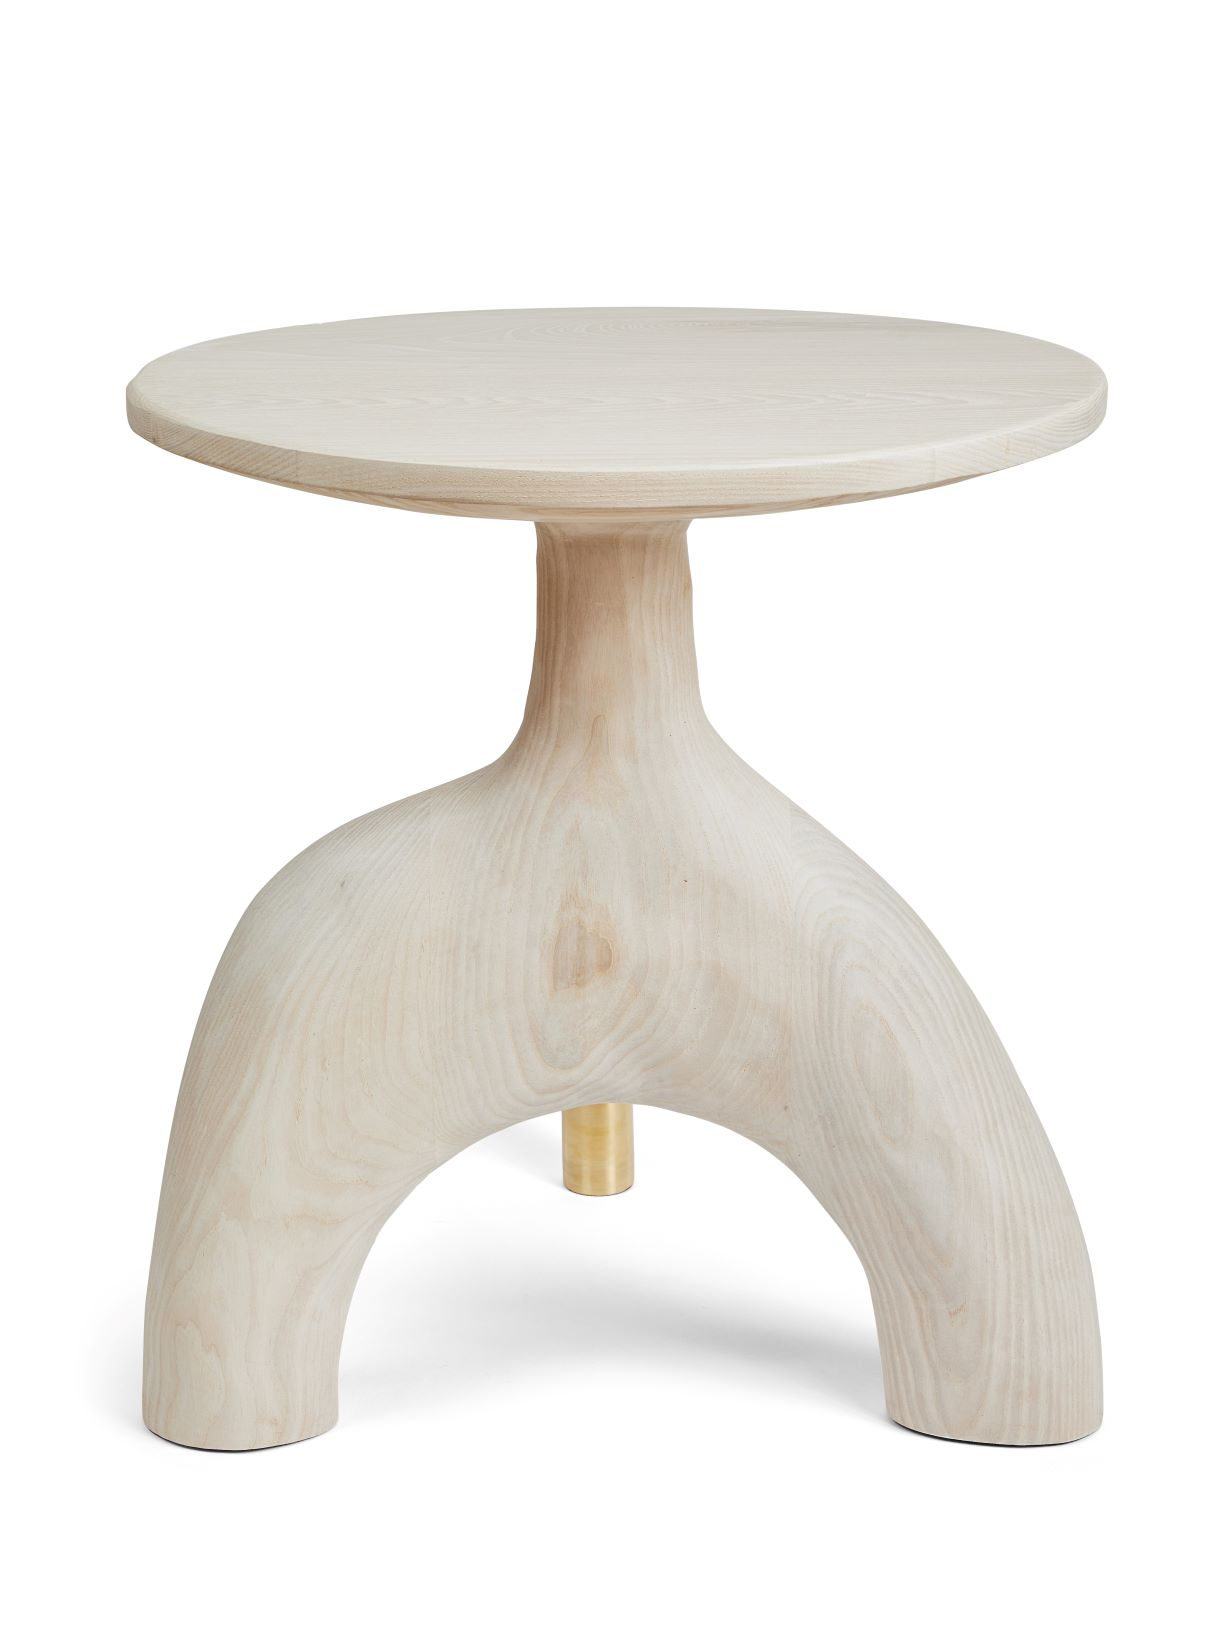 SCULPTURE 001 WHITE WASHED ASH SIDE TABLE (4).jpg